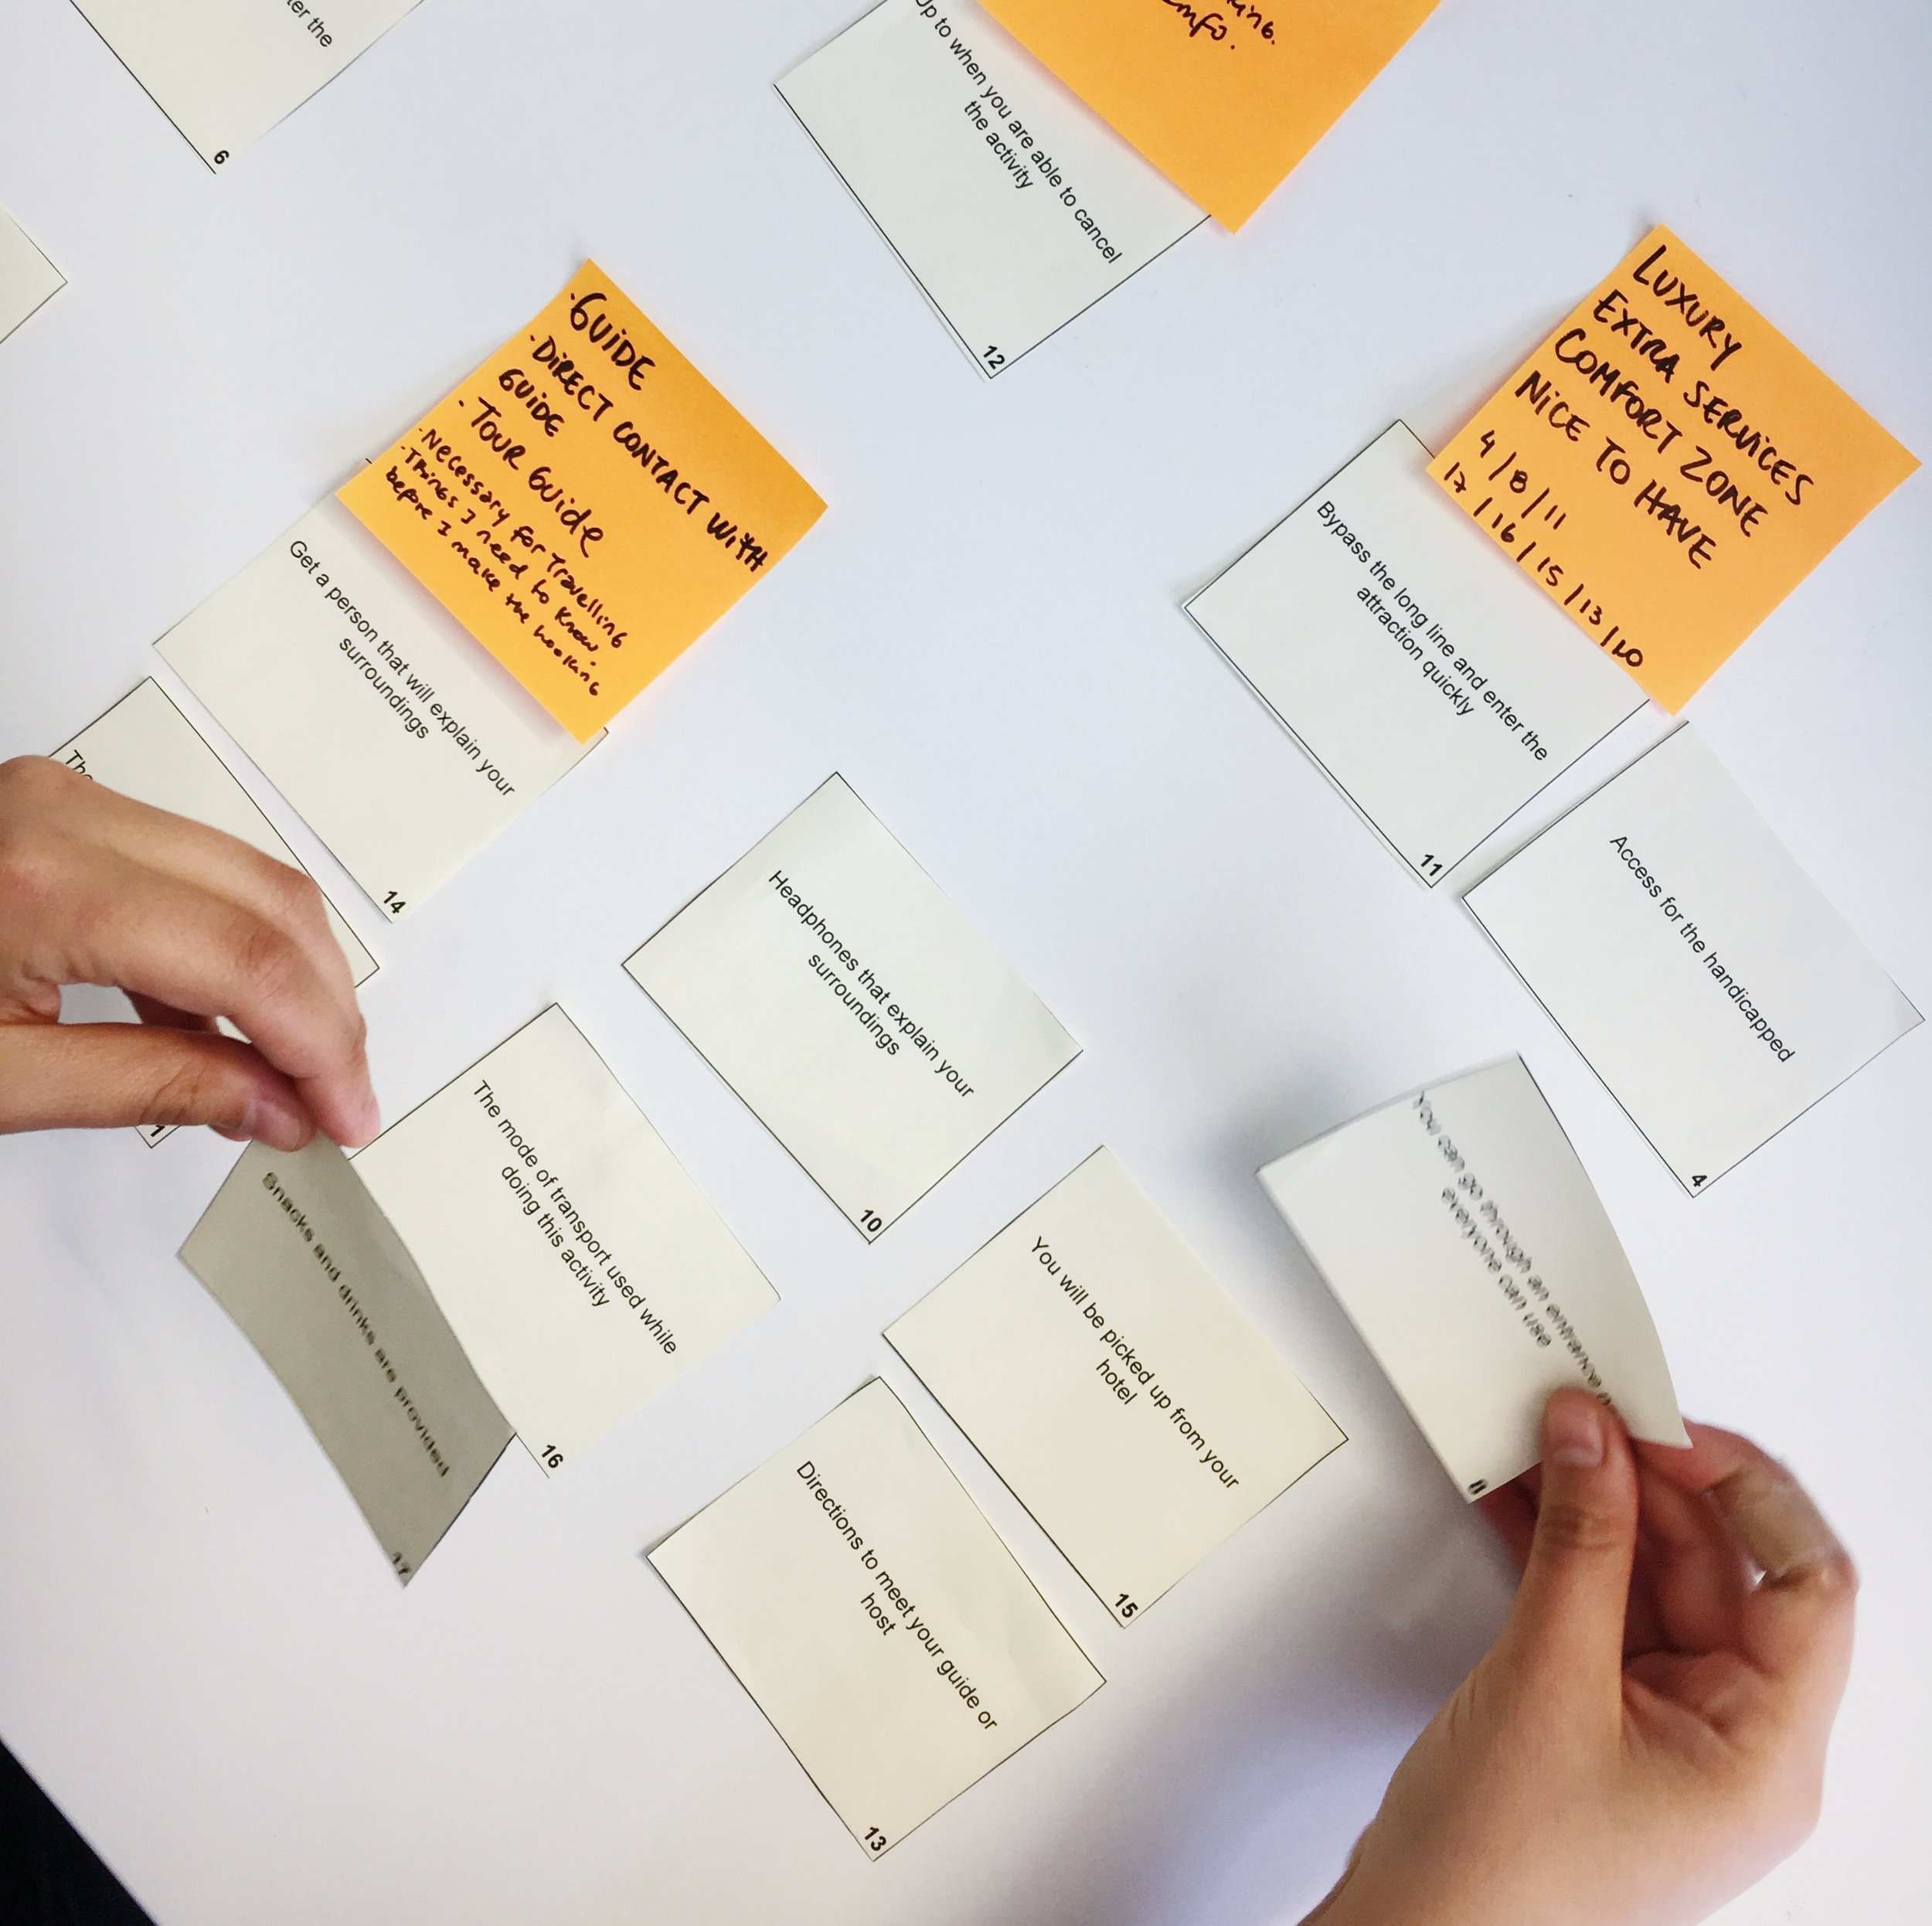 Card Sorting - This is a qualitative/quantitative method that asks users to group items and assign categories to each group.